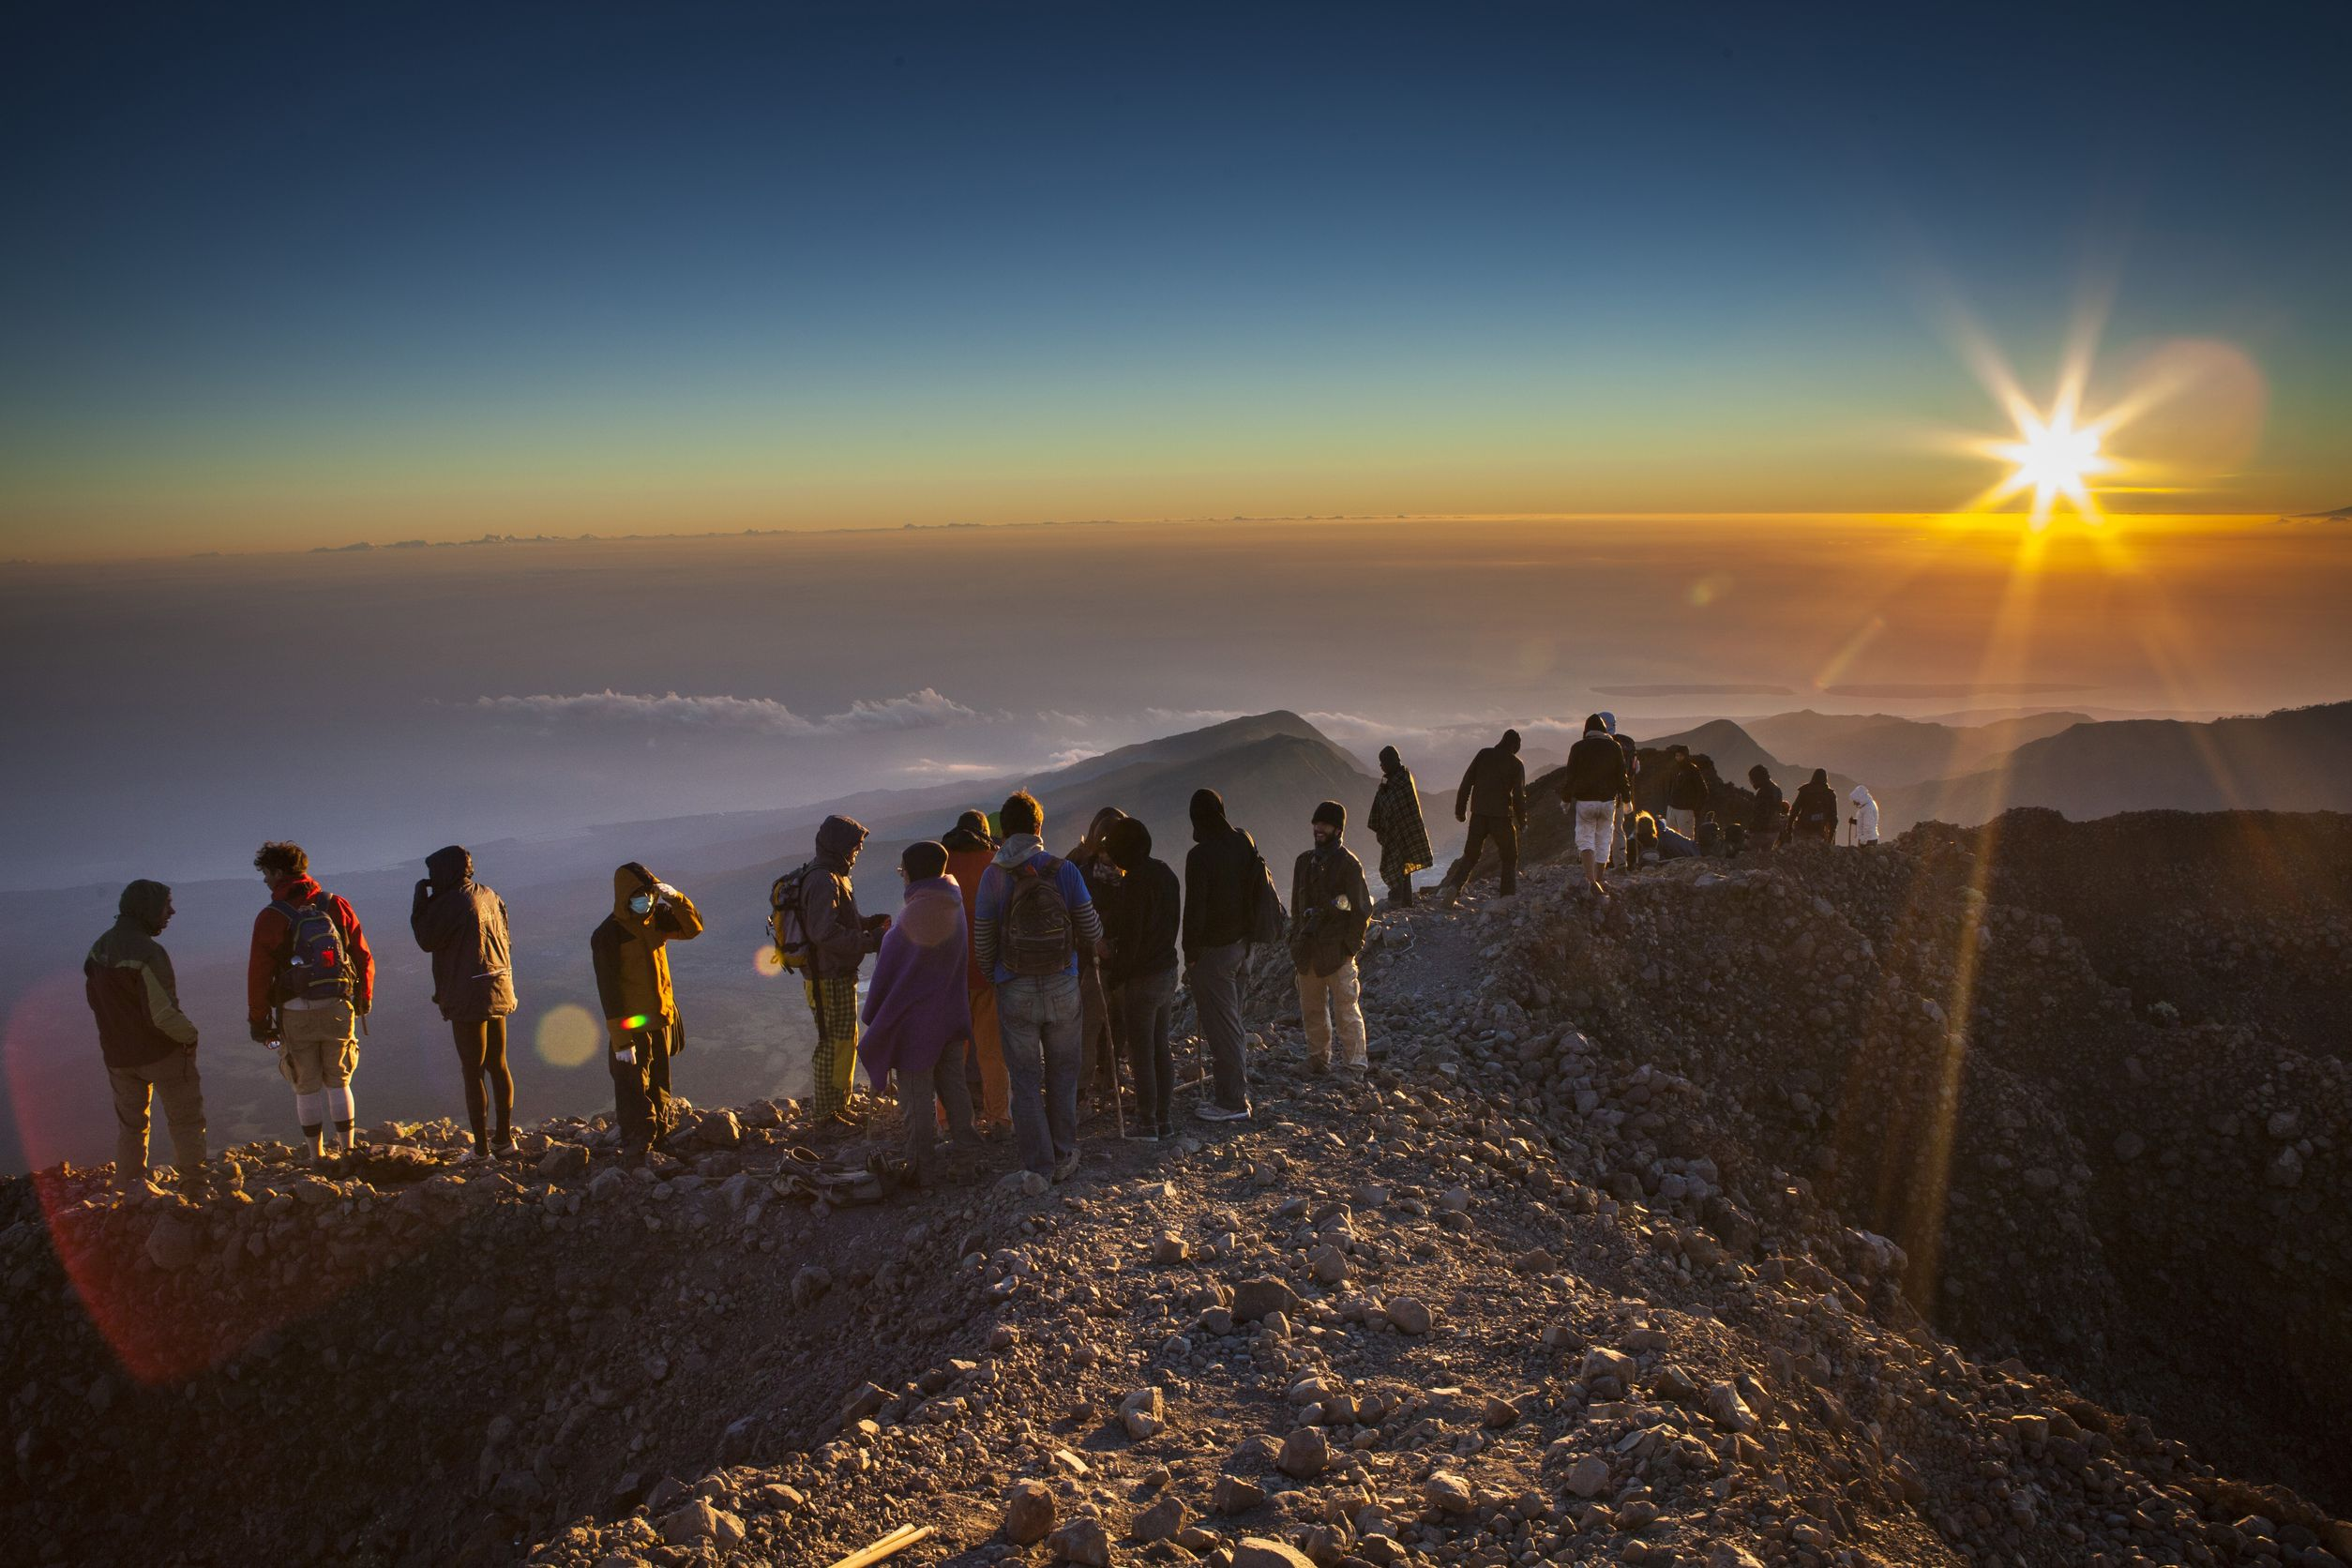 Indonesia - The top of Rinjani Mt 3,726m Lombok island